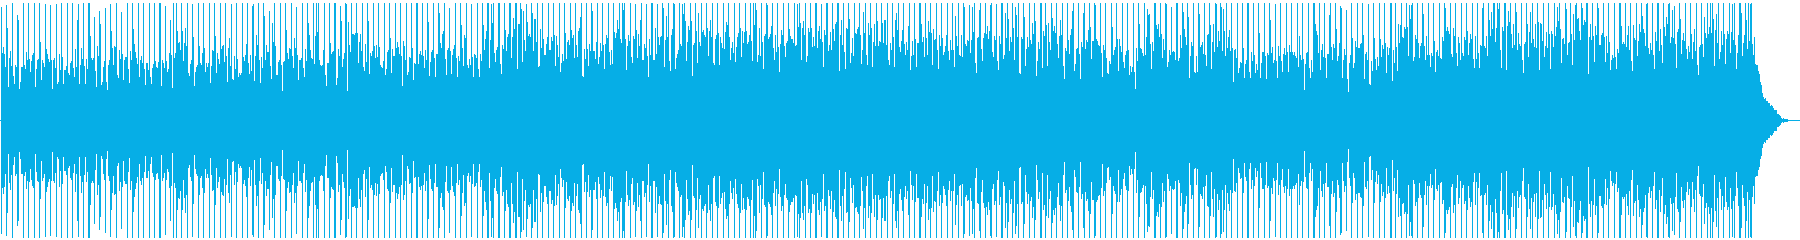 Corporate & Warm B.'s reproduced waveform